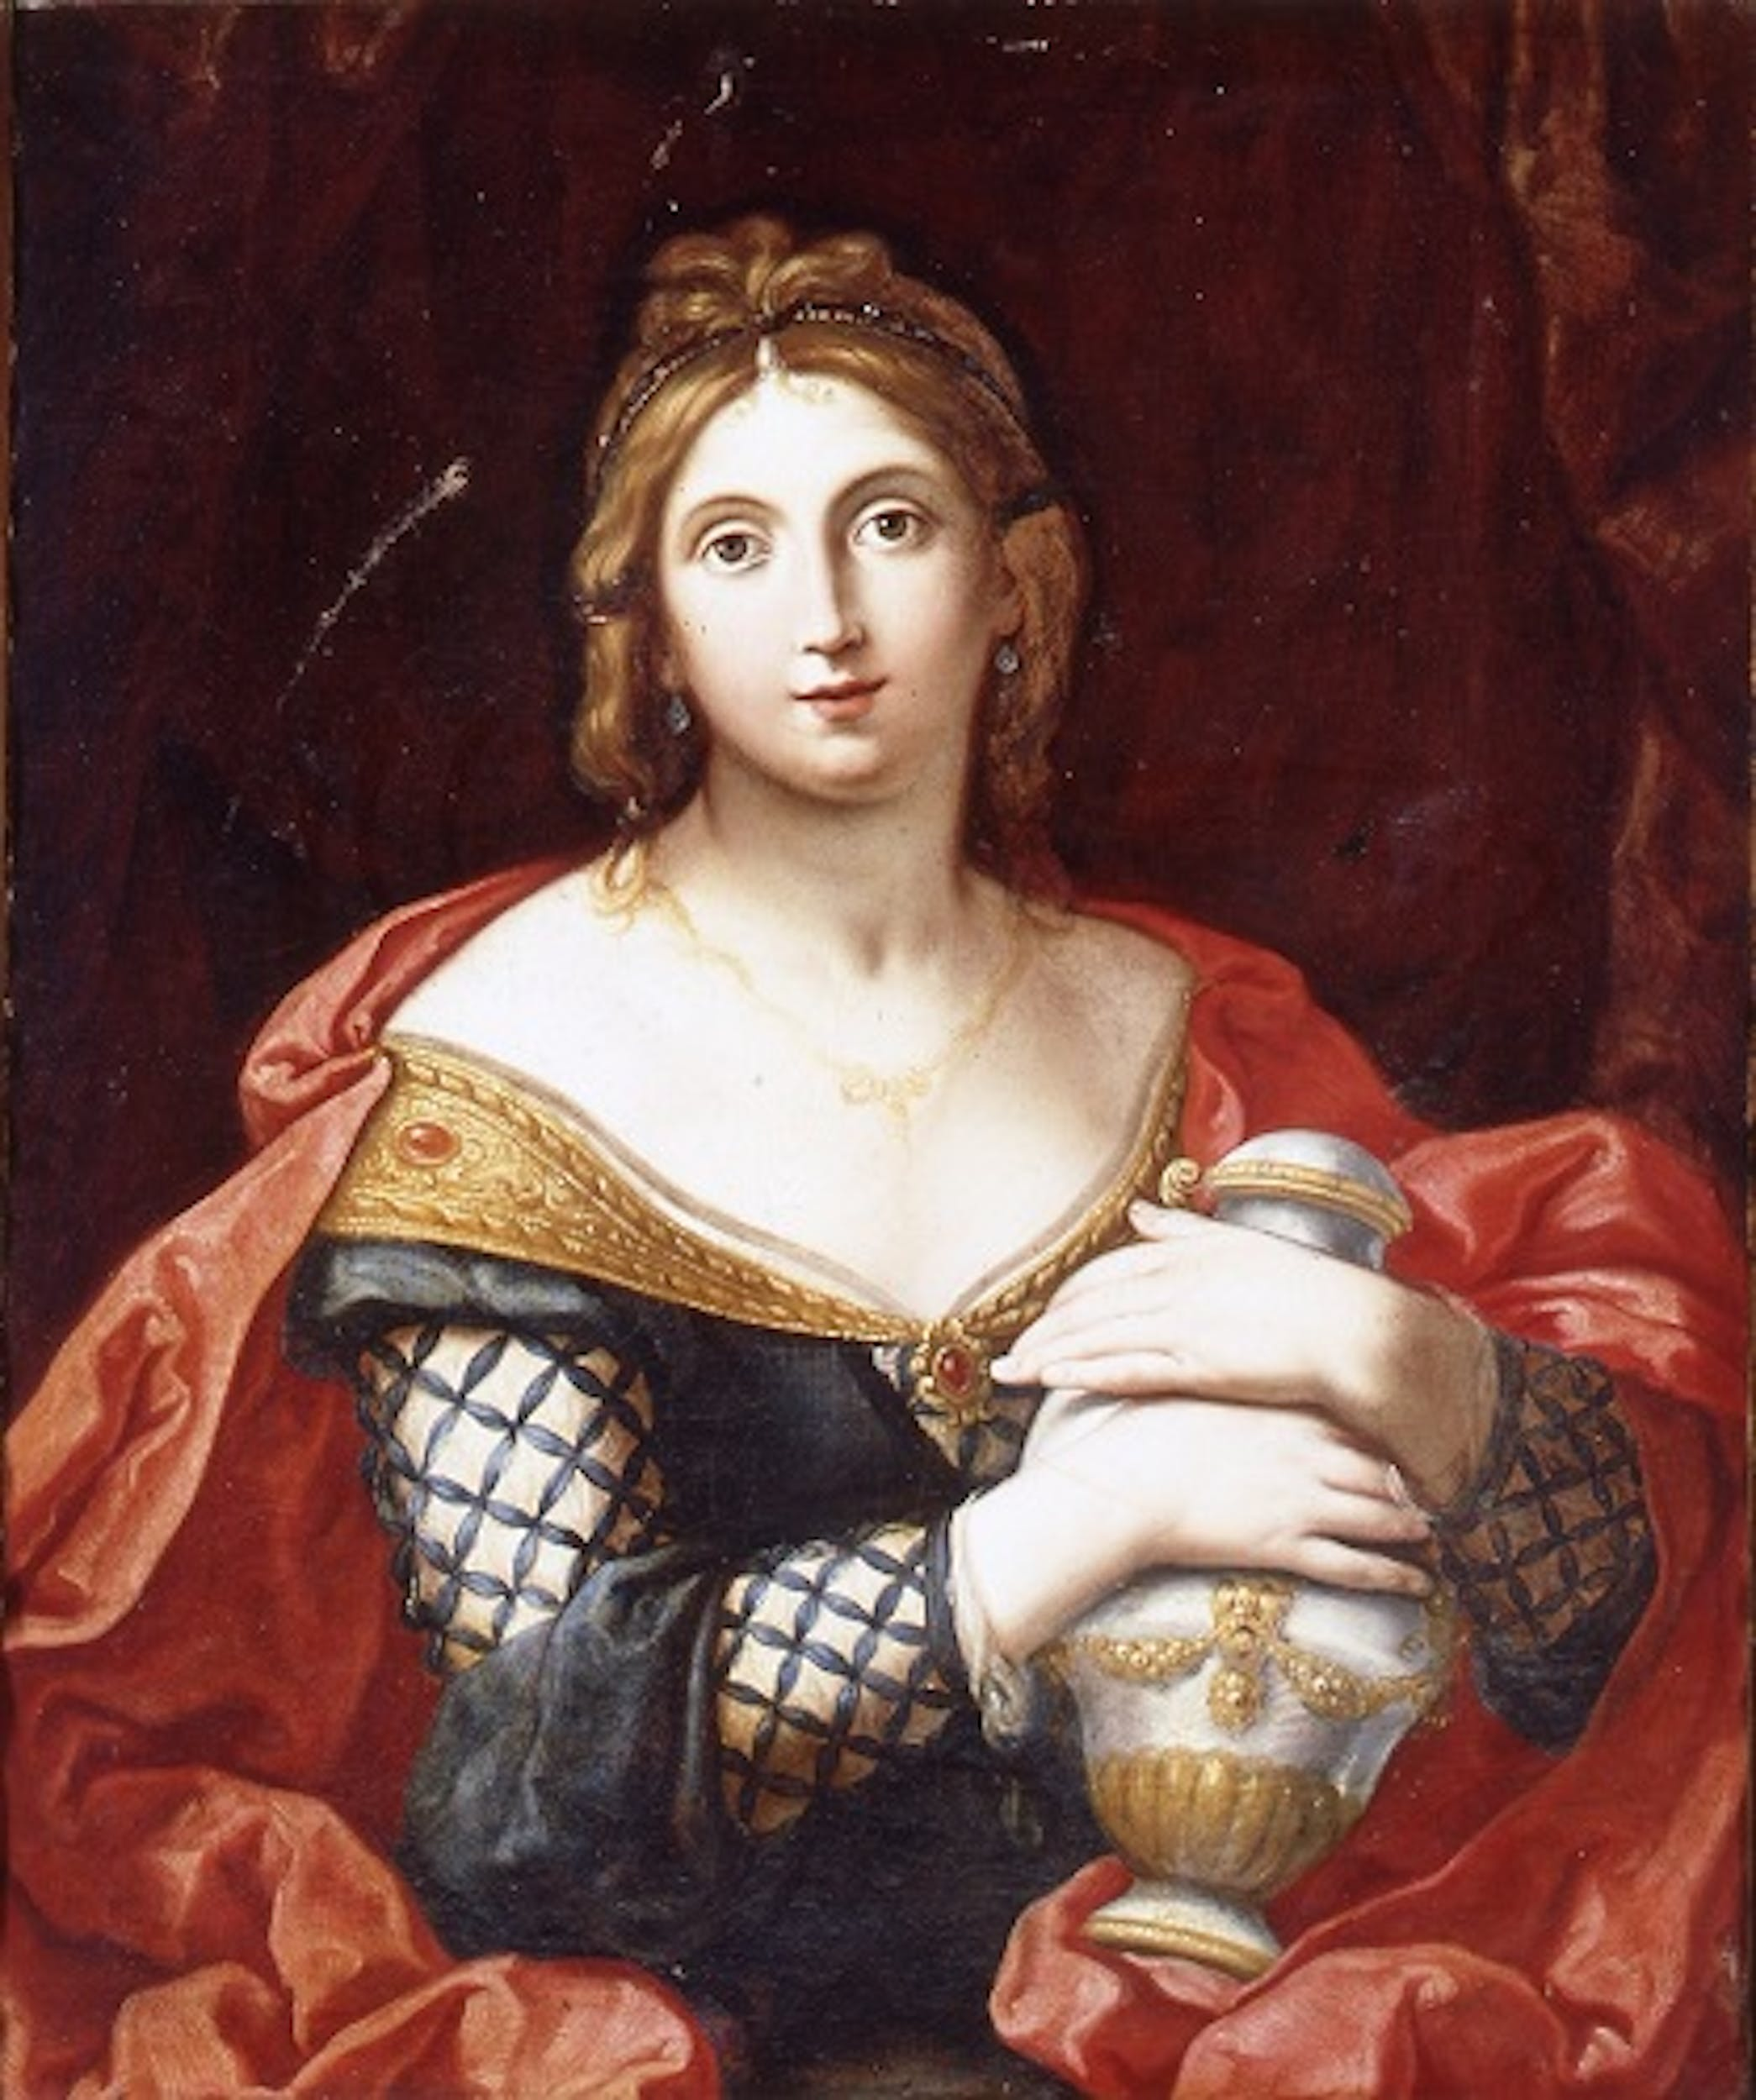 Fig. 4 Elisabetta Sirani, Artemisia, Modena, collezione privata - Elisabetta Sirani, Artemisia, Modena, private collection L. Zanasi.